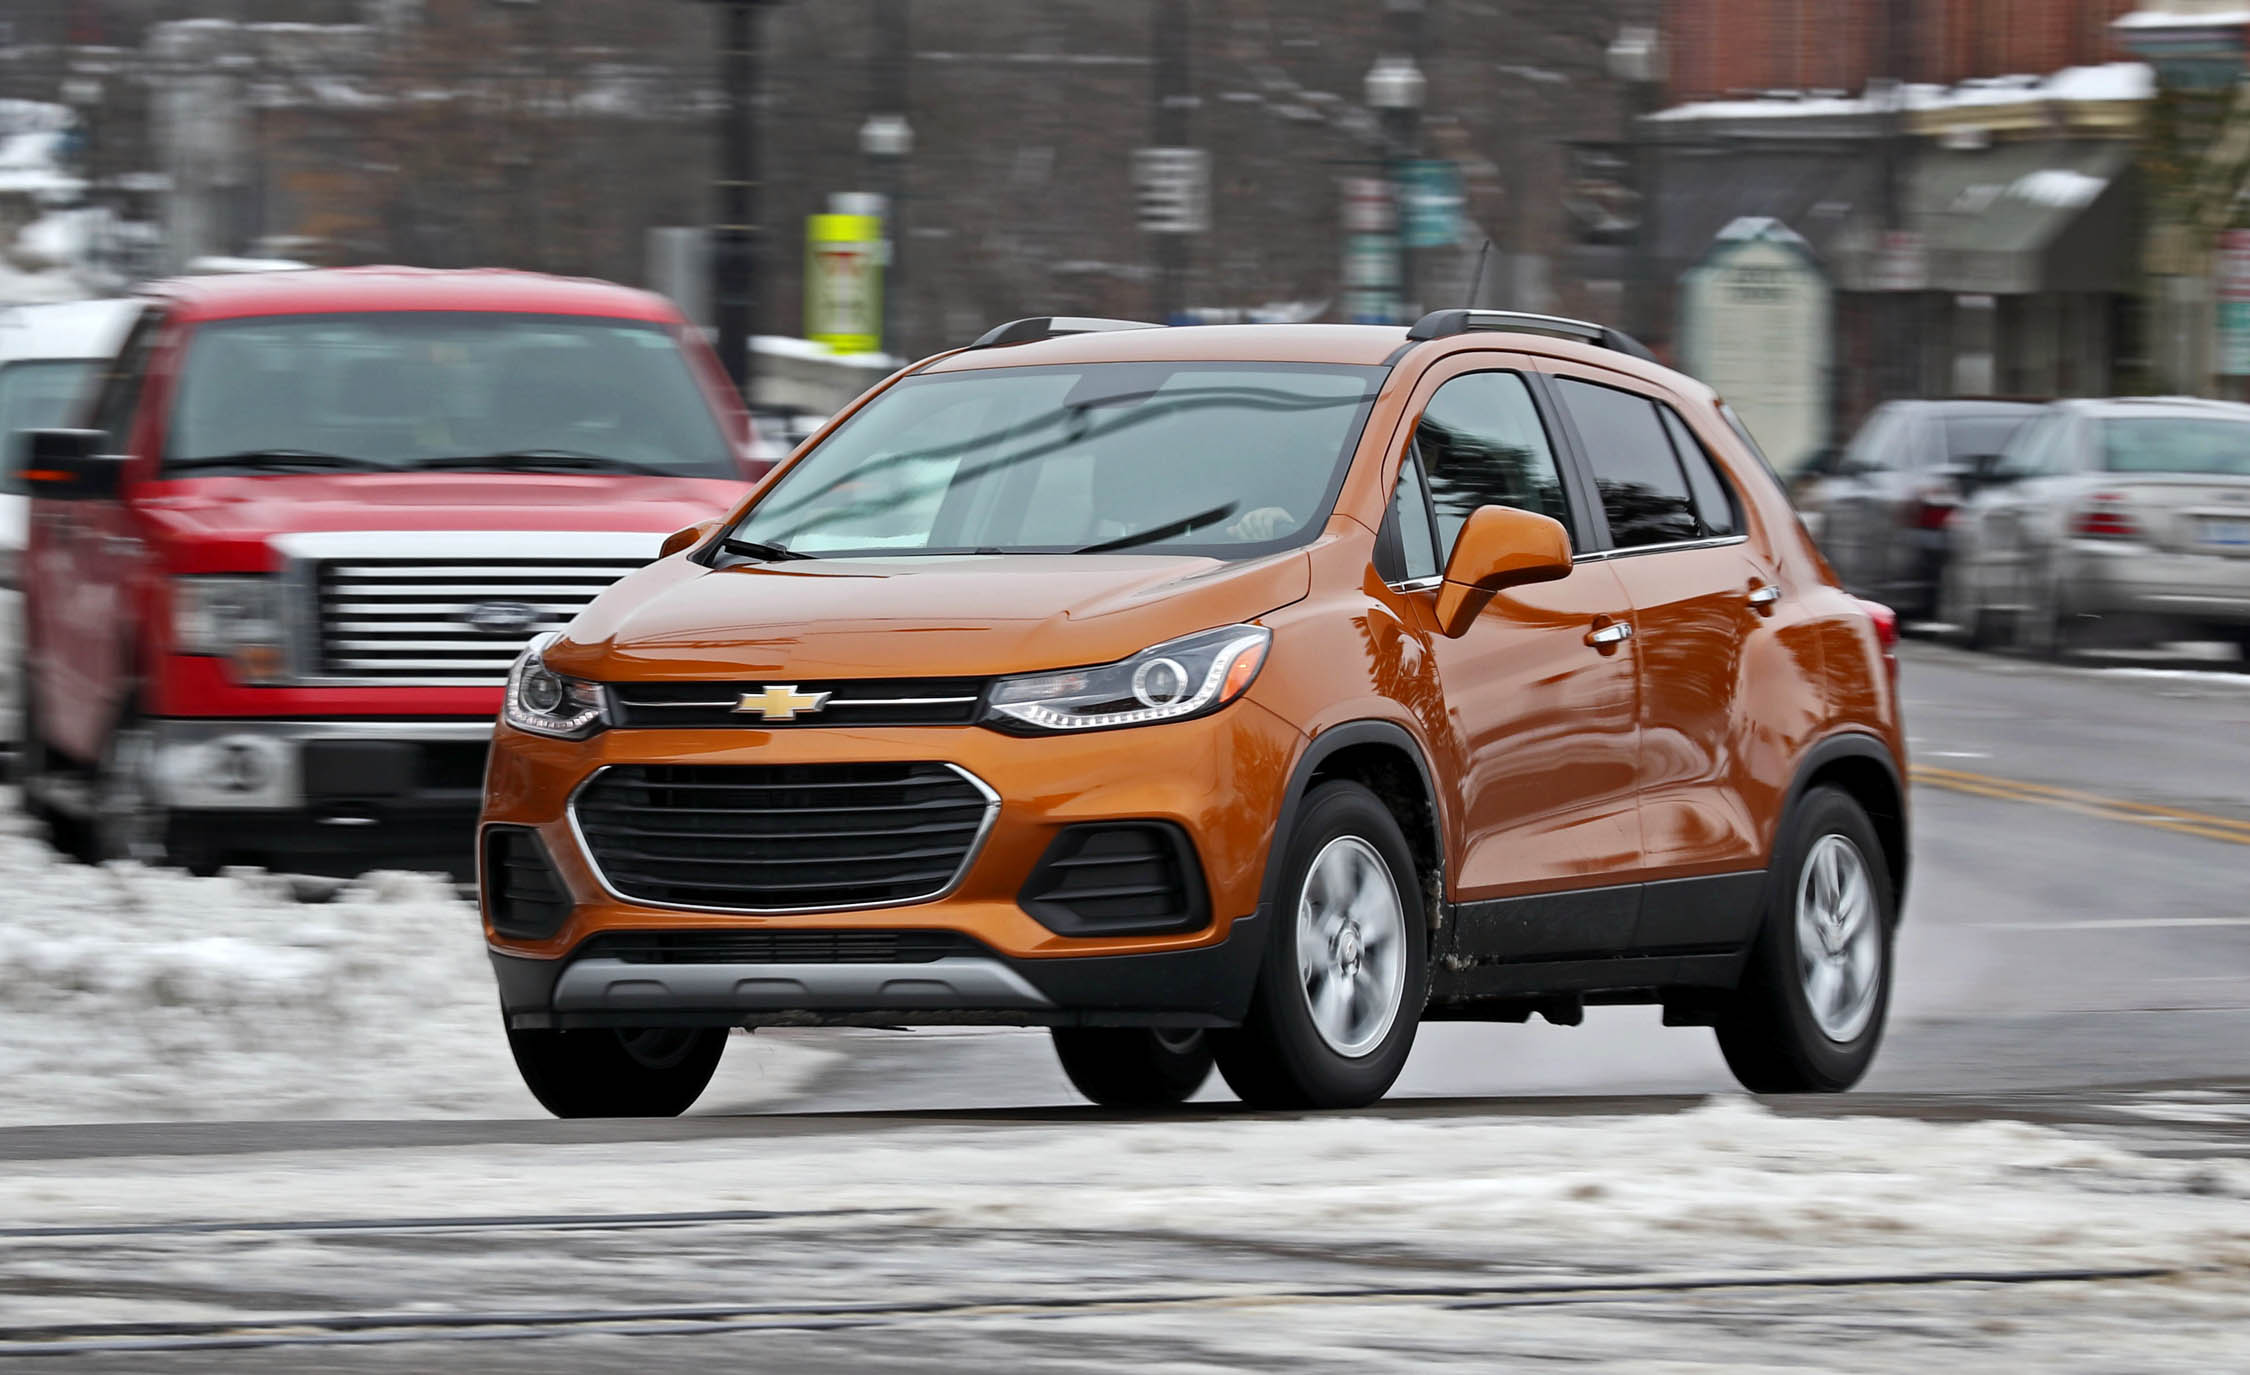 2017 Chevrolet Trax Test Drive (View 5 of 47)